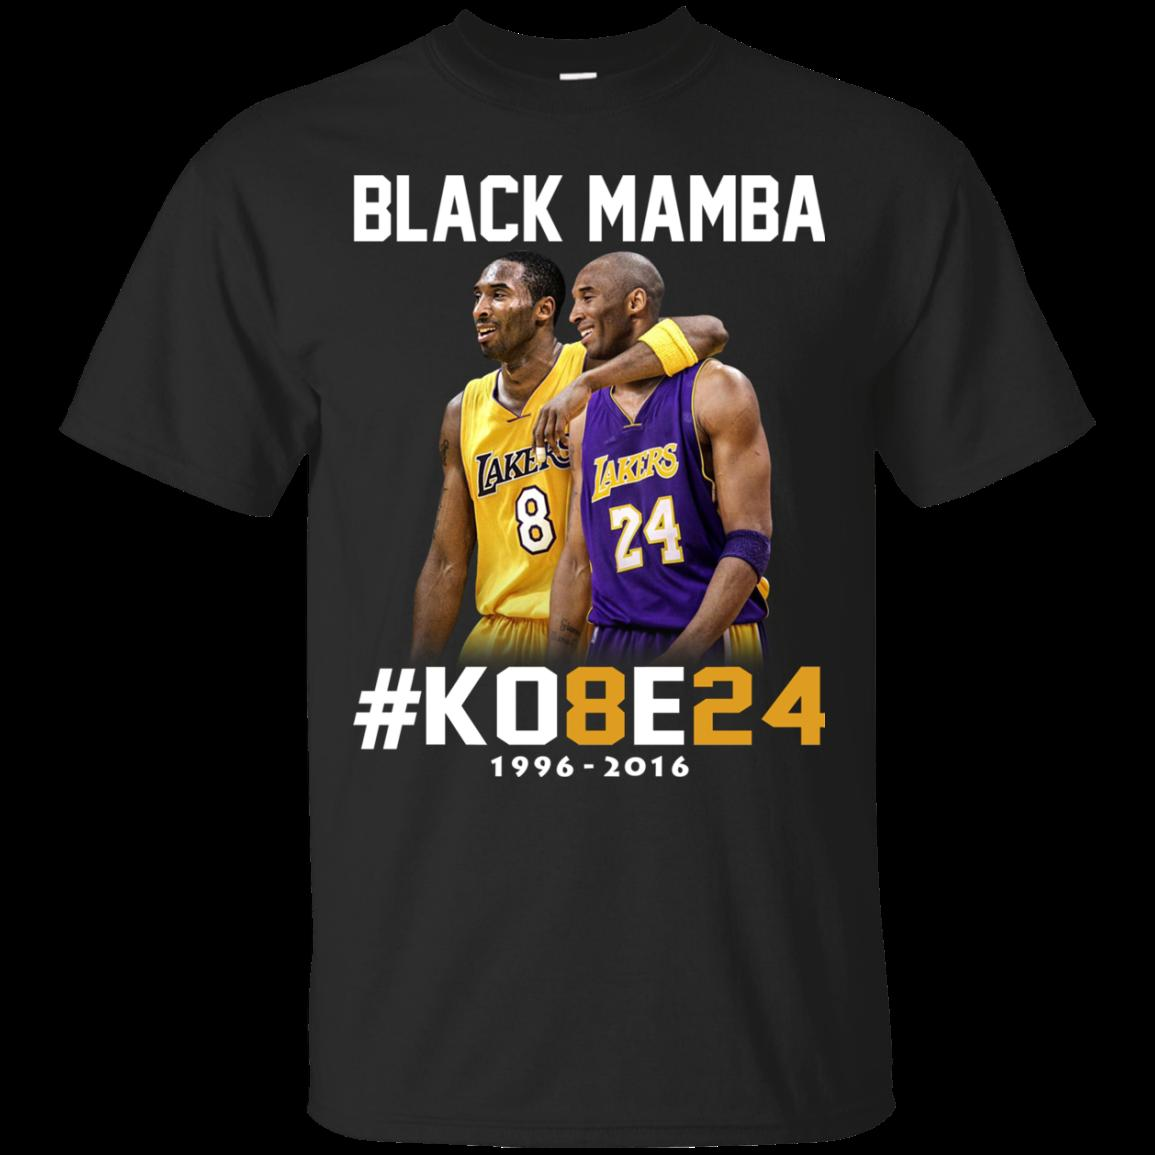 dee2f33498a Black Mamba T Shirt India – EDGE Engineering and Consulting Limited